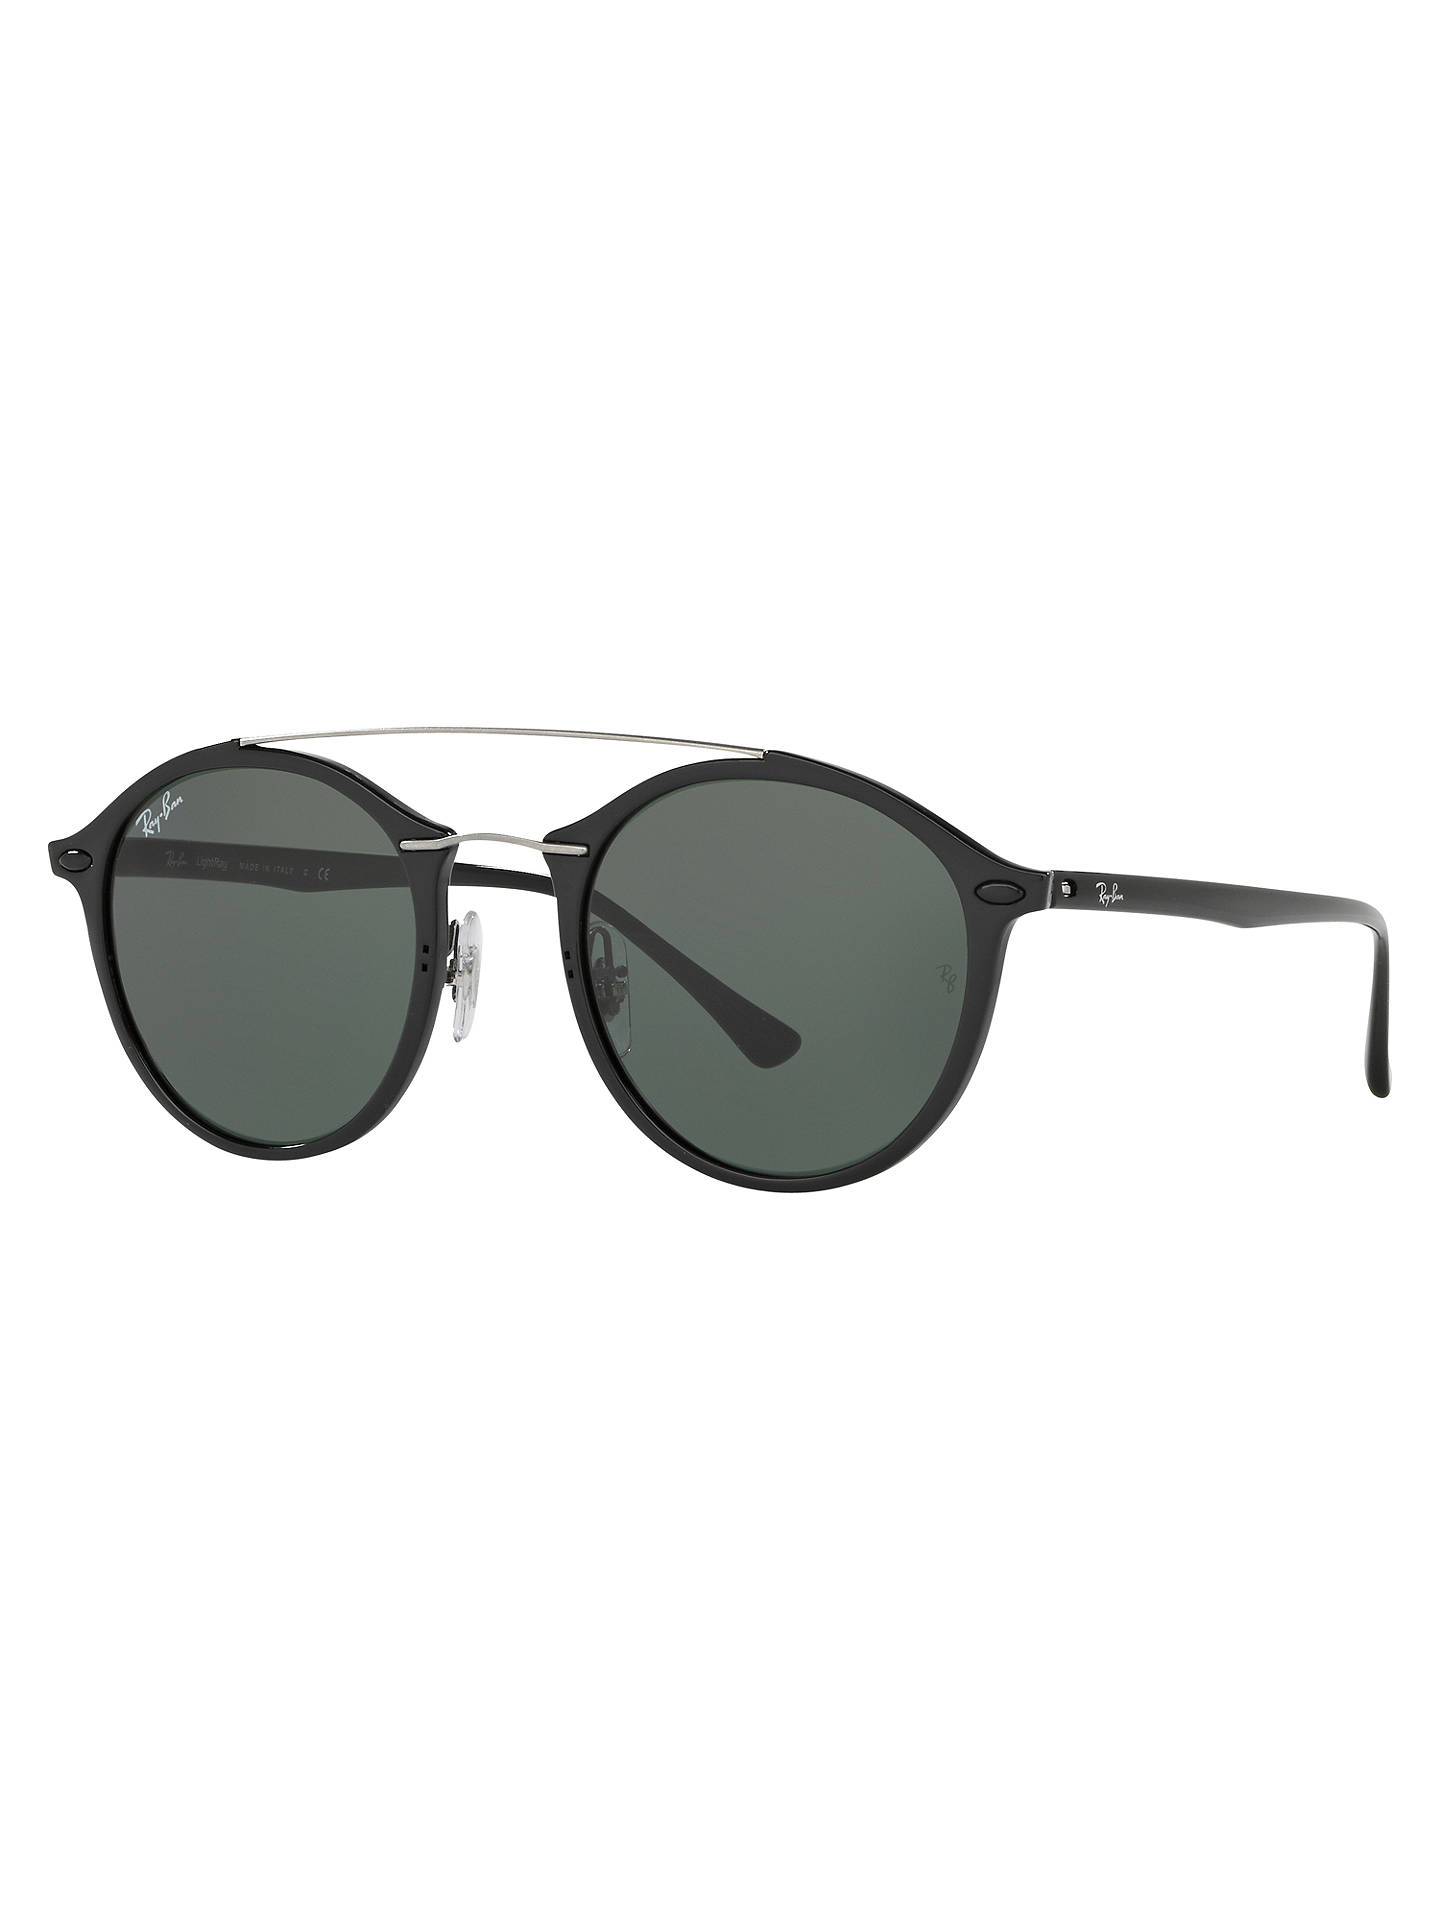 7d82058f5b Ray-Ban RB4266 Oval Sunglasses at John Lewis   Partners